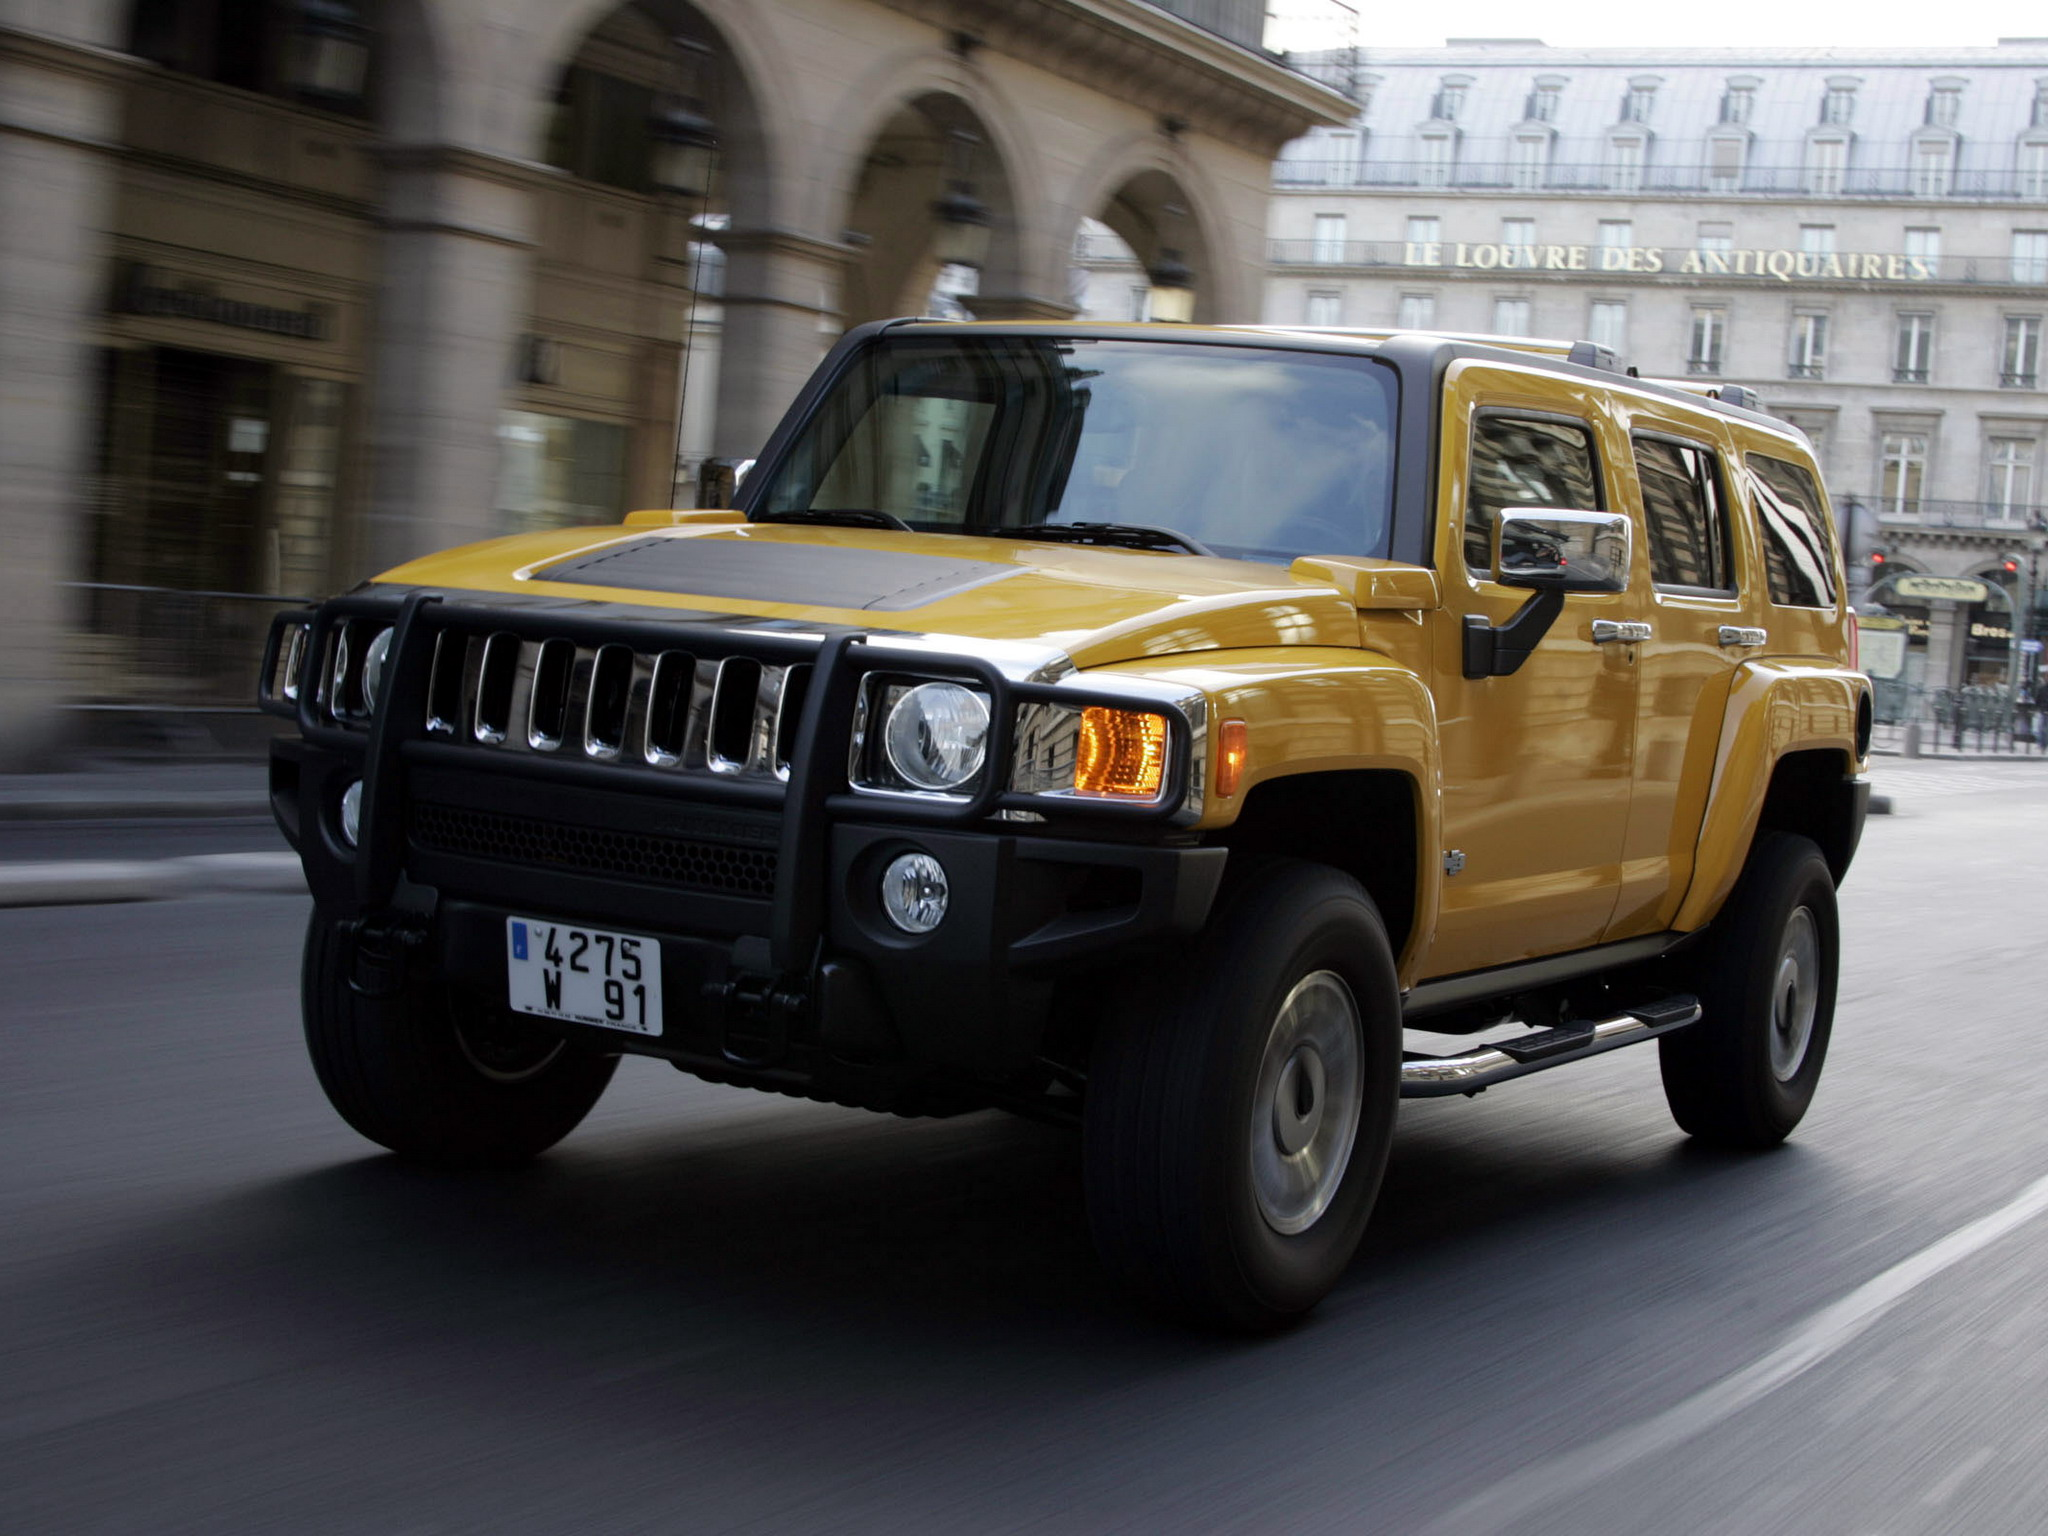 2006 Hummer H3 In Europe